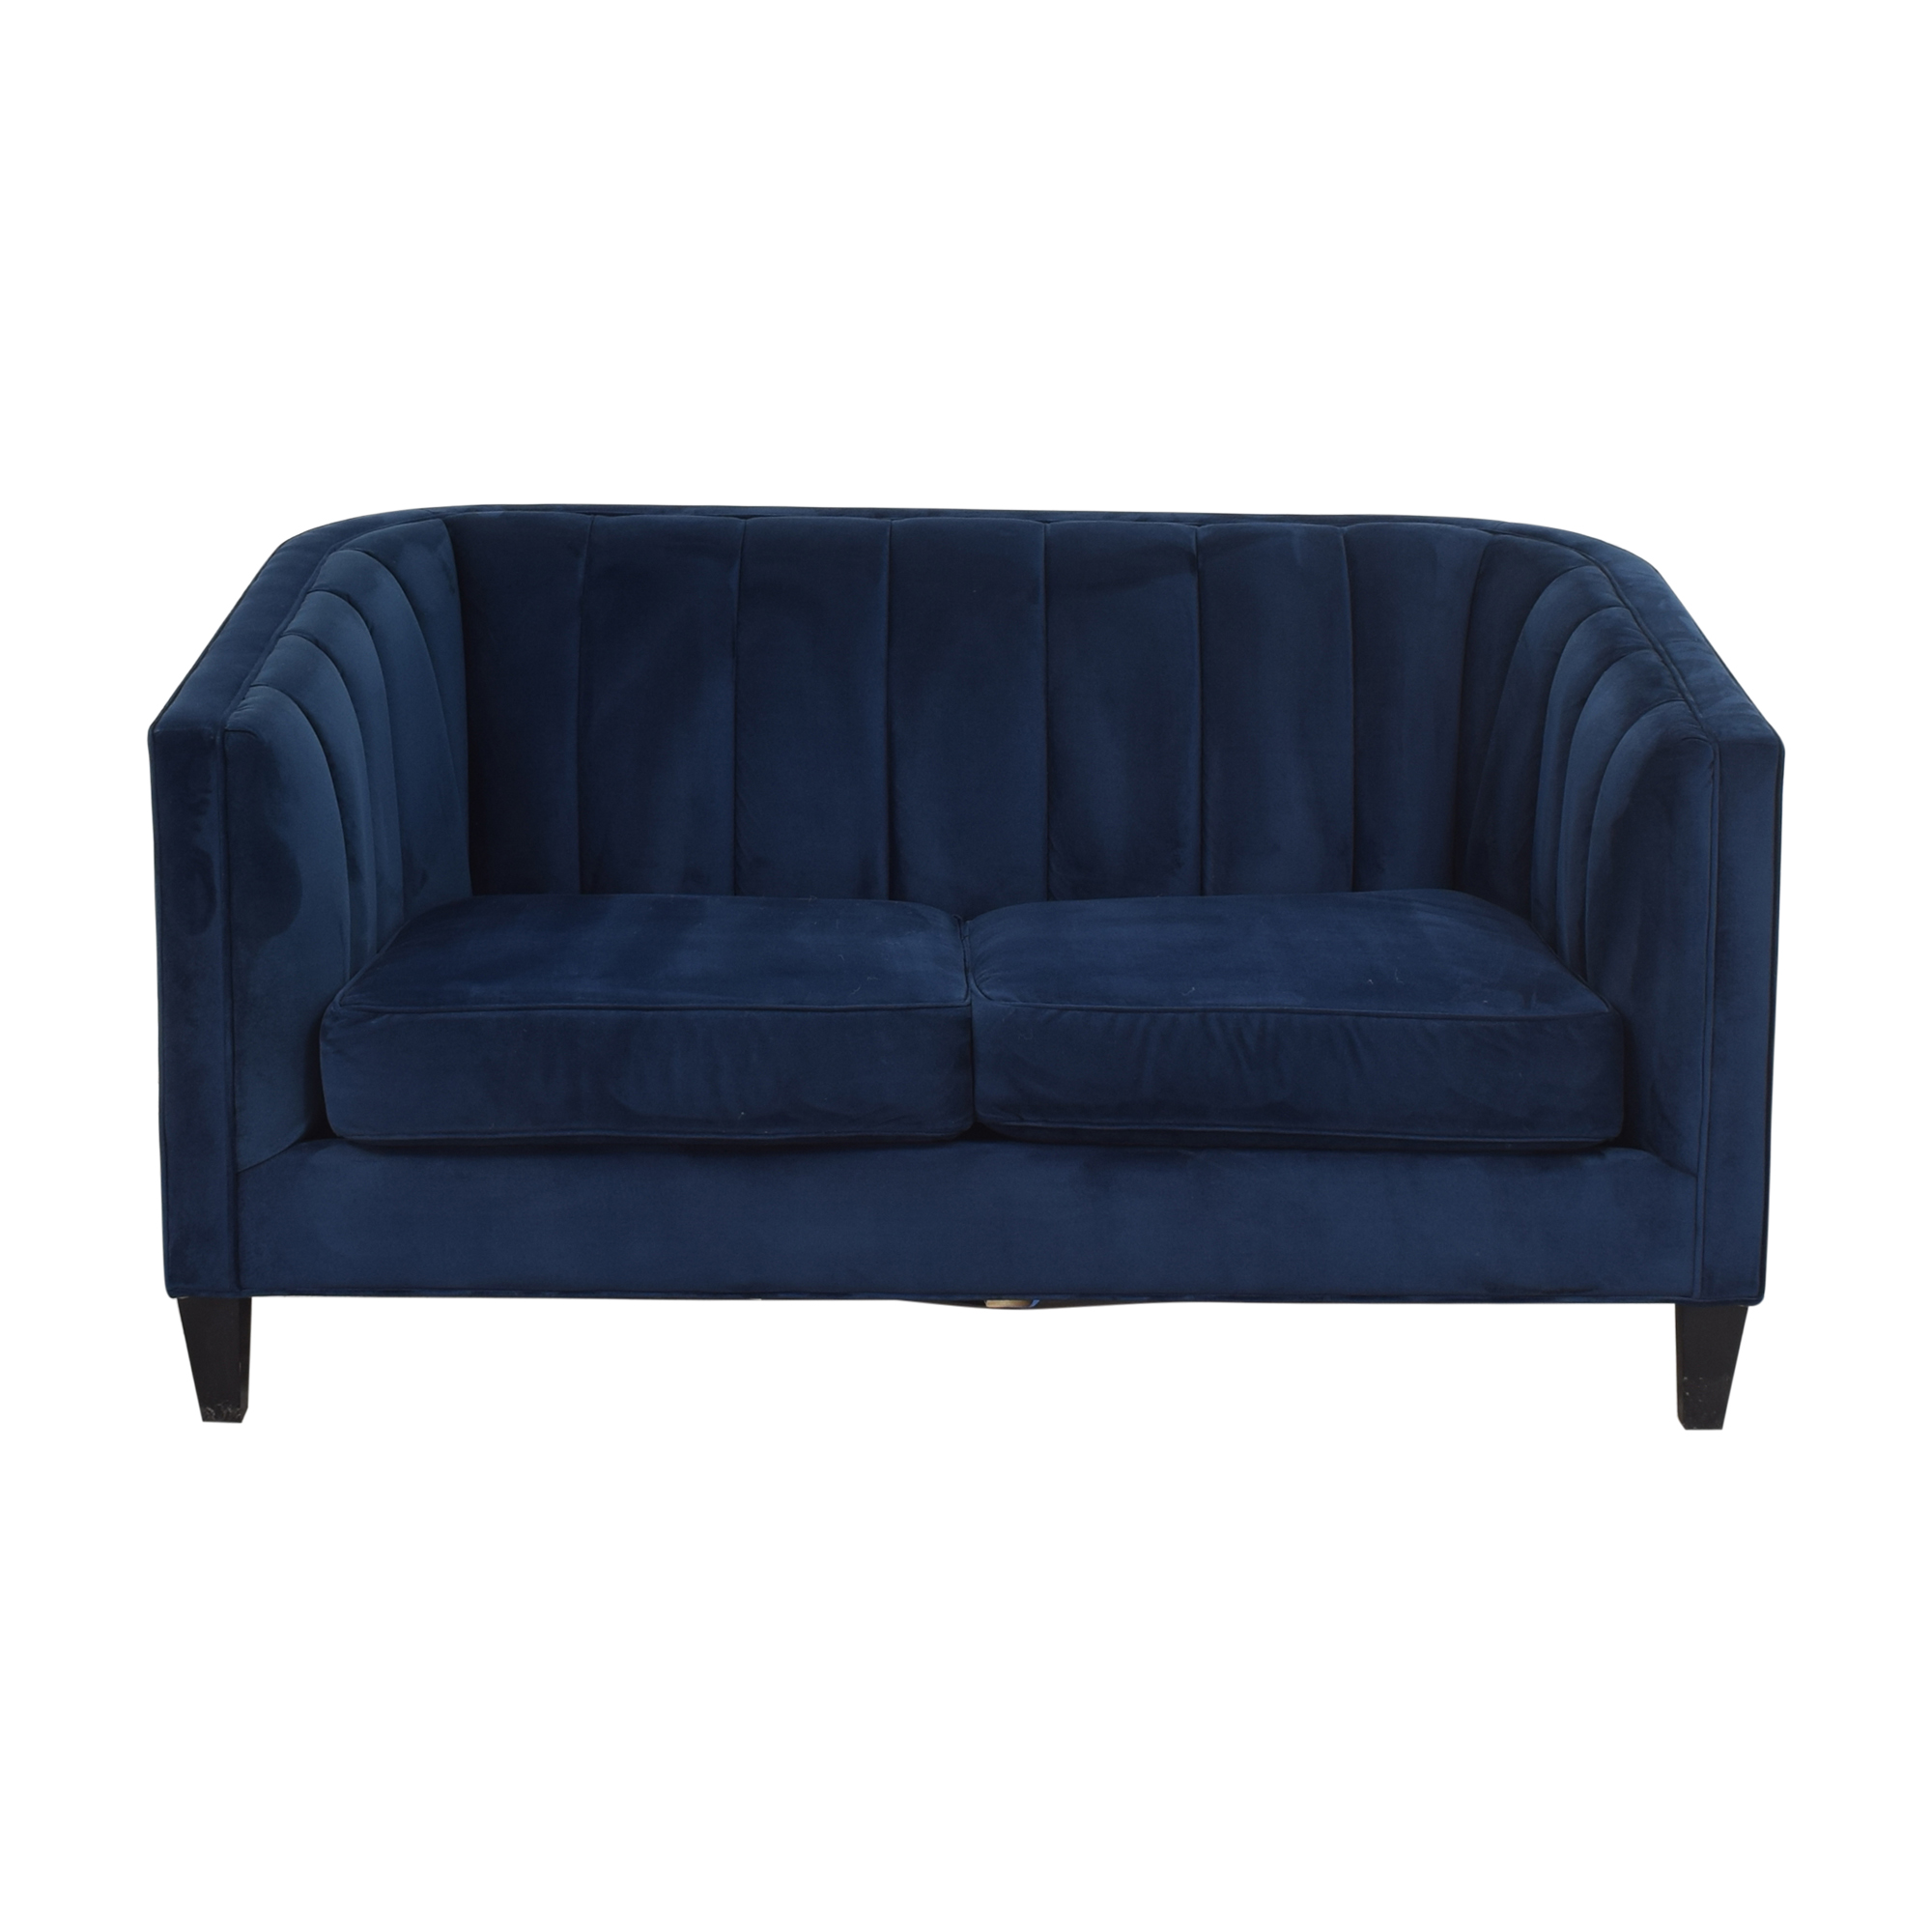 Raymour & Flanigan Raymour & Flanigan Cindy Crawford Home Loveseat discount